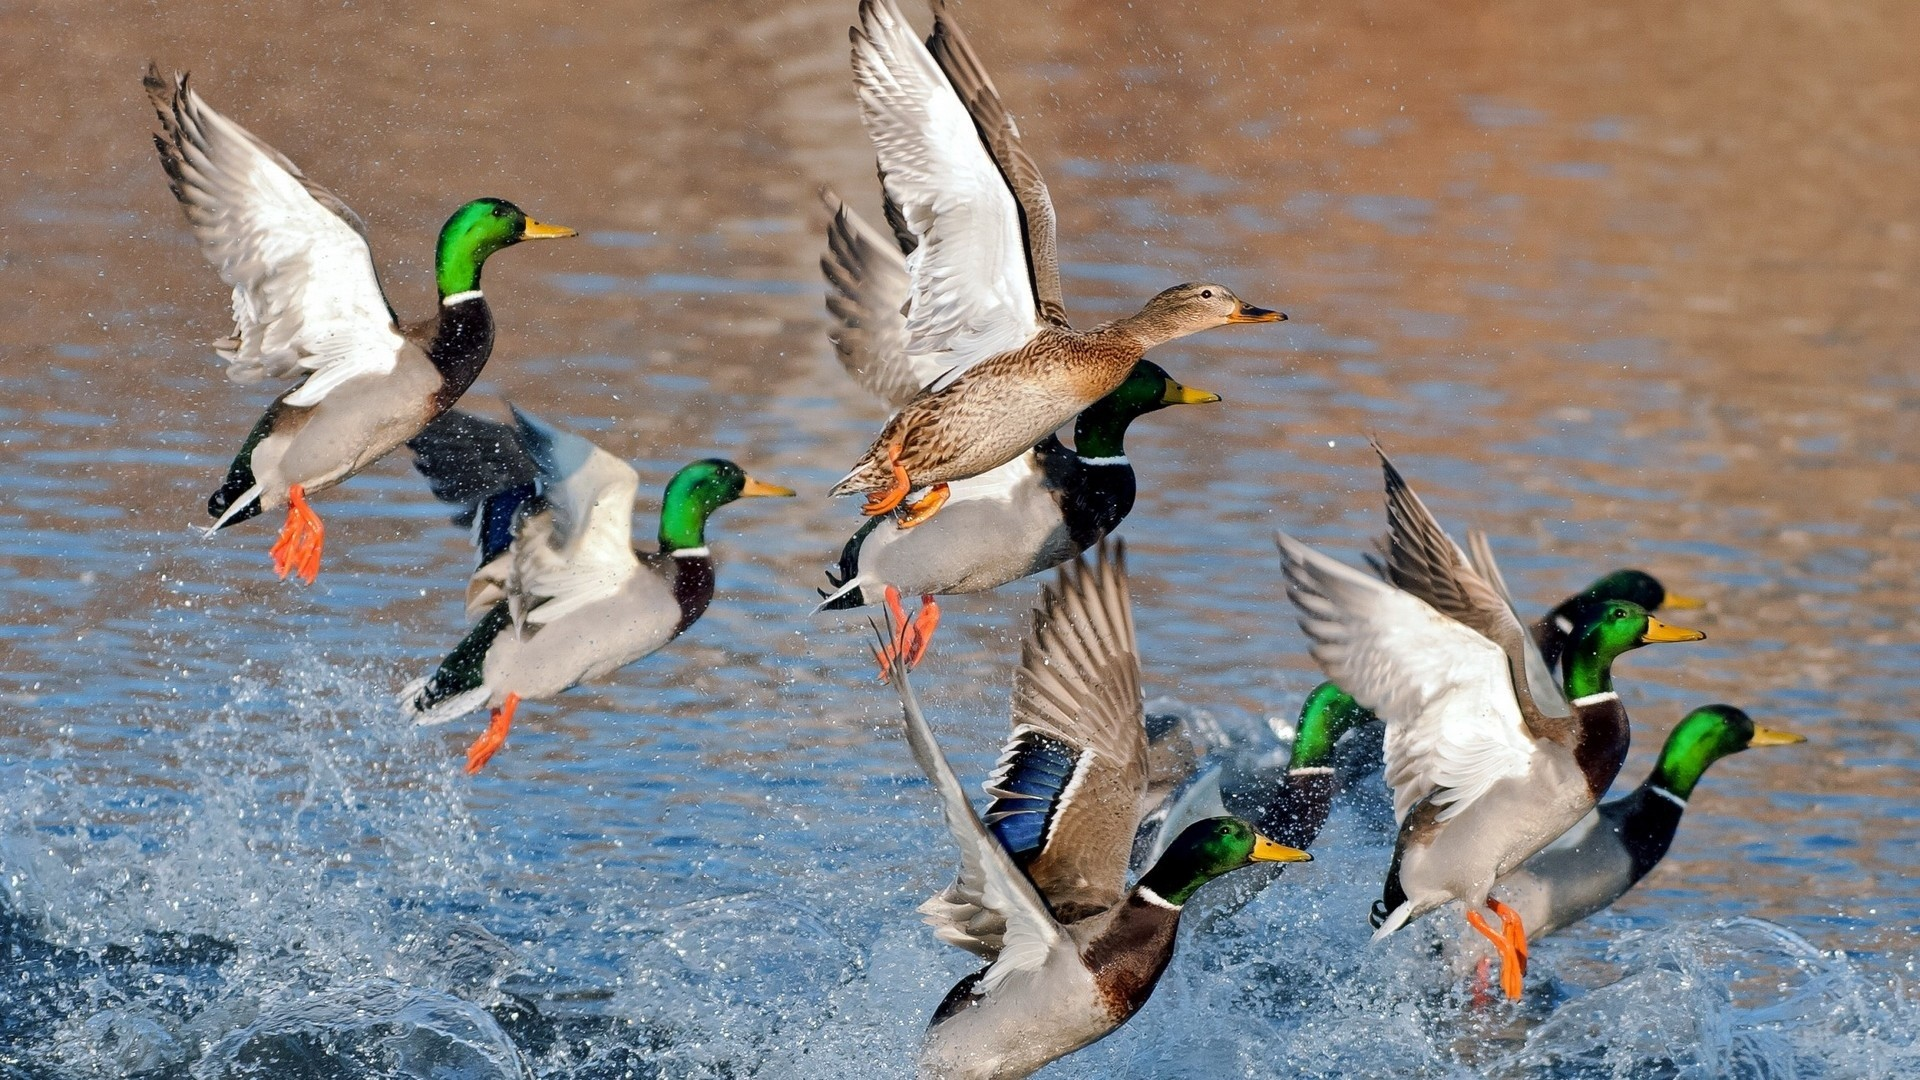 Drake waterfowl wallpaper 56 images 1920x1080 ducks flying over water 1920 x 1080 download close voltagebd Images